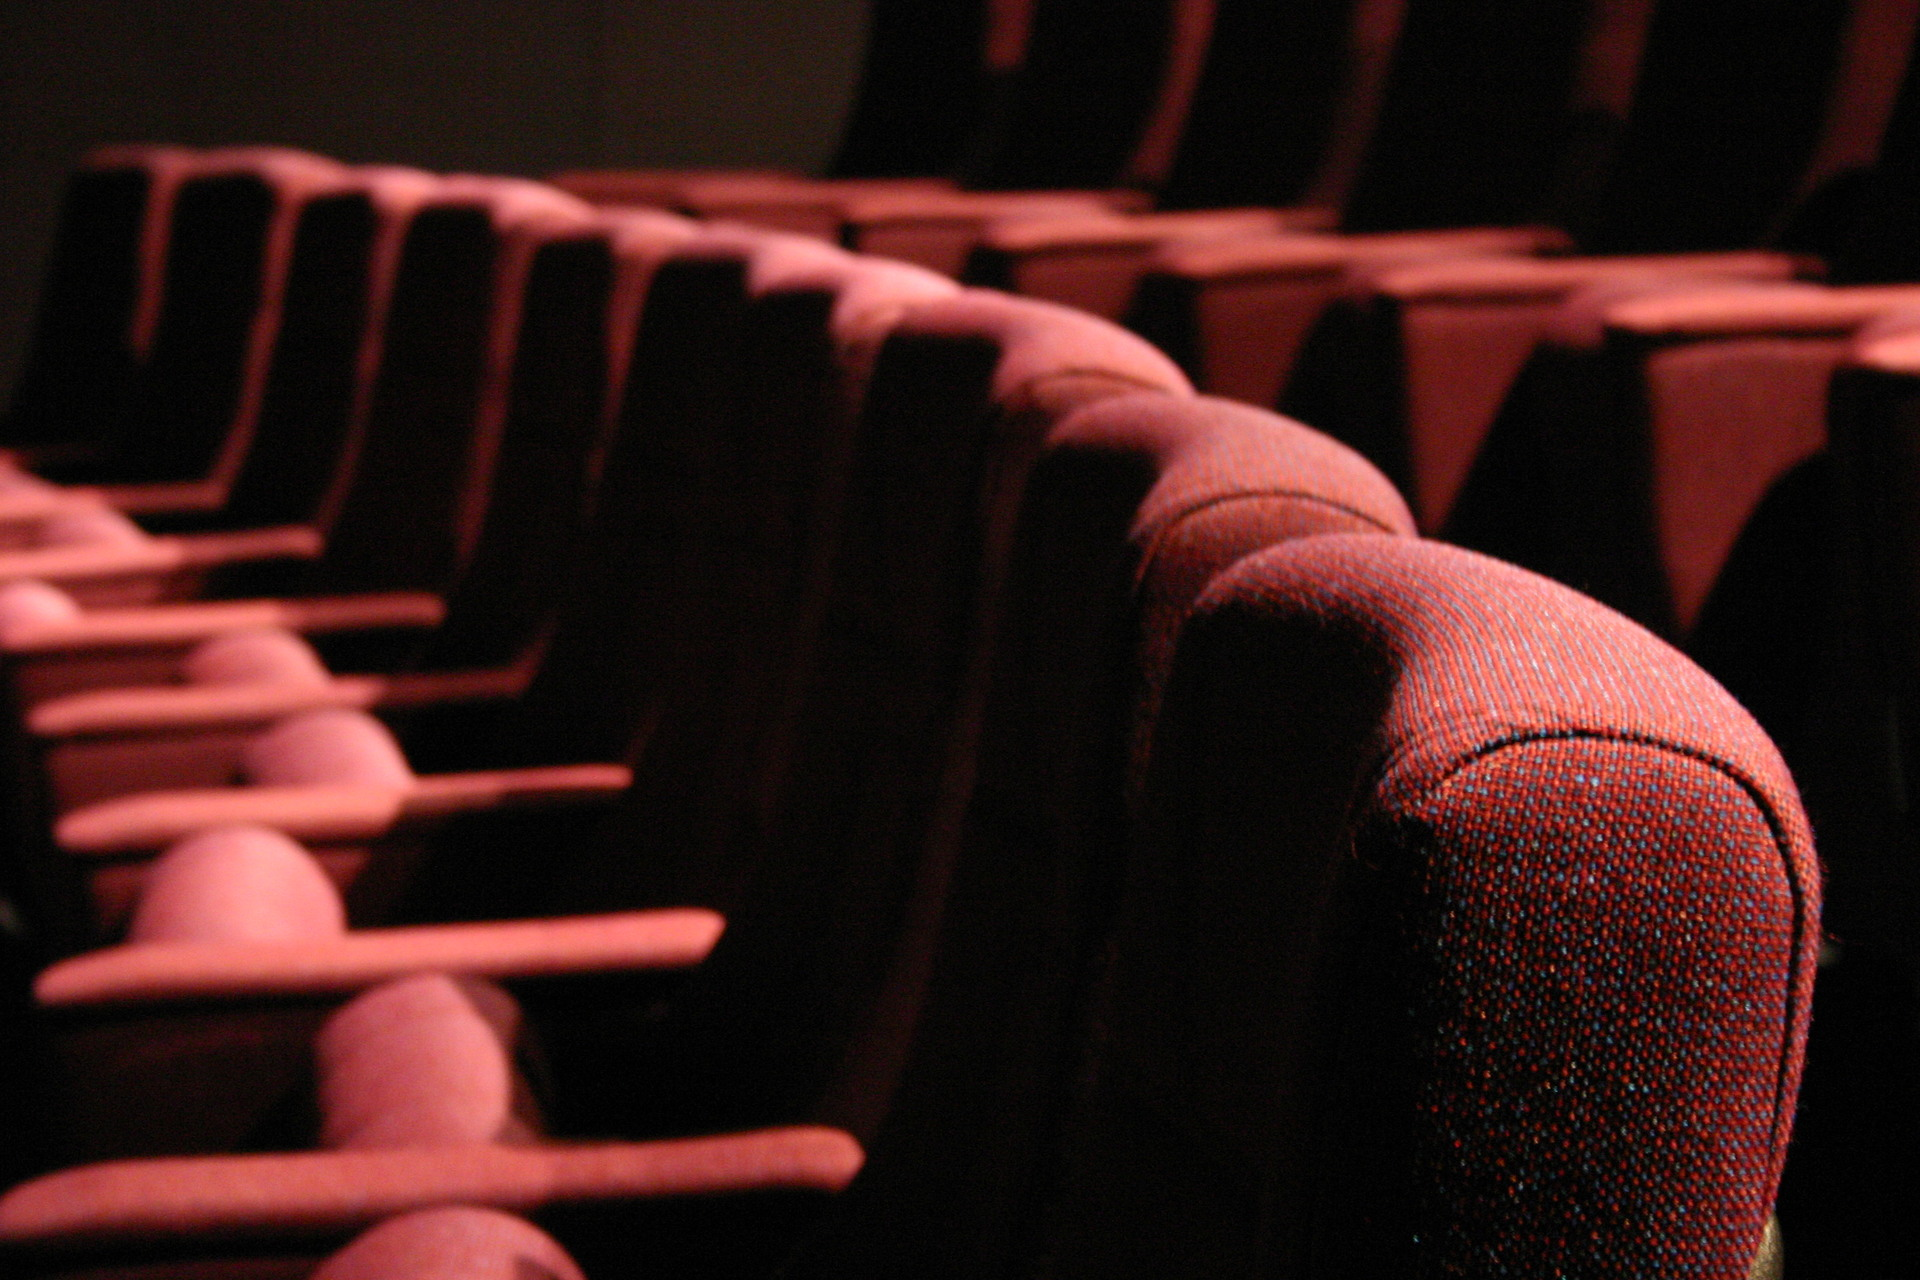 theater-seats-1513151-1920x1280